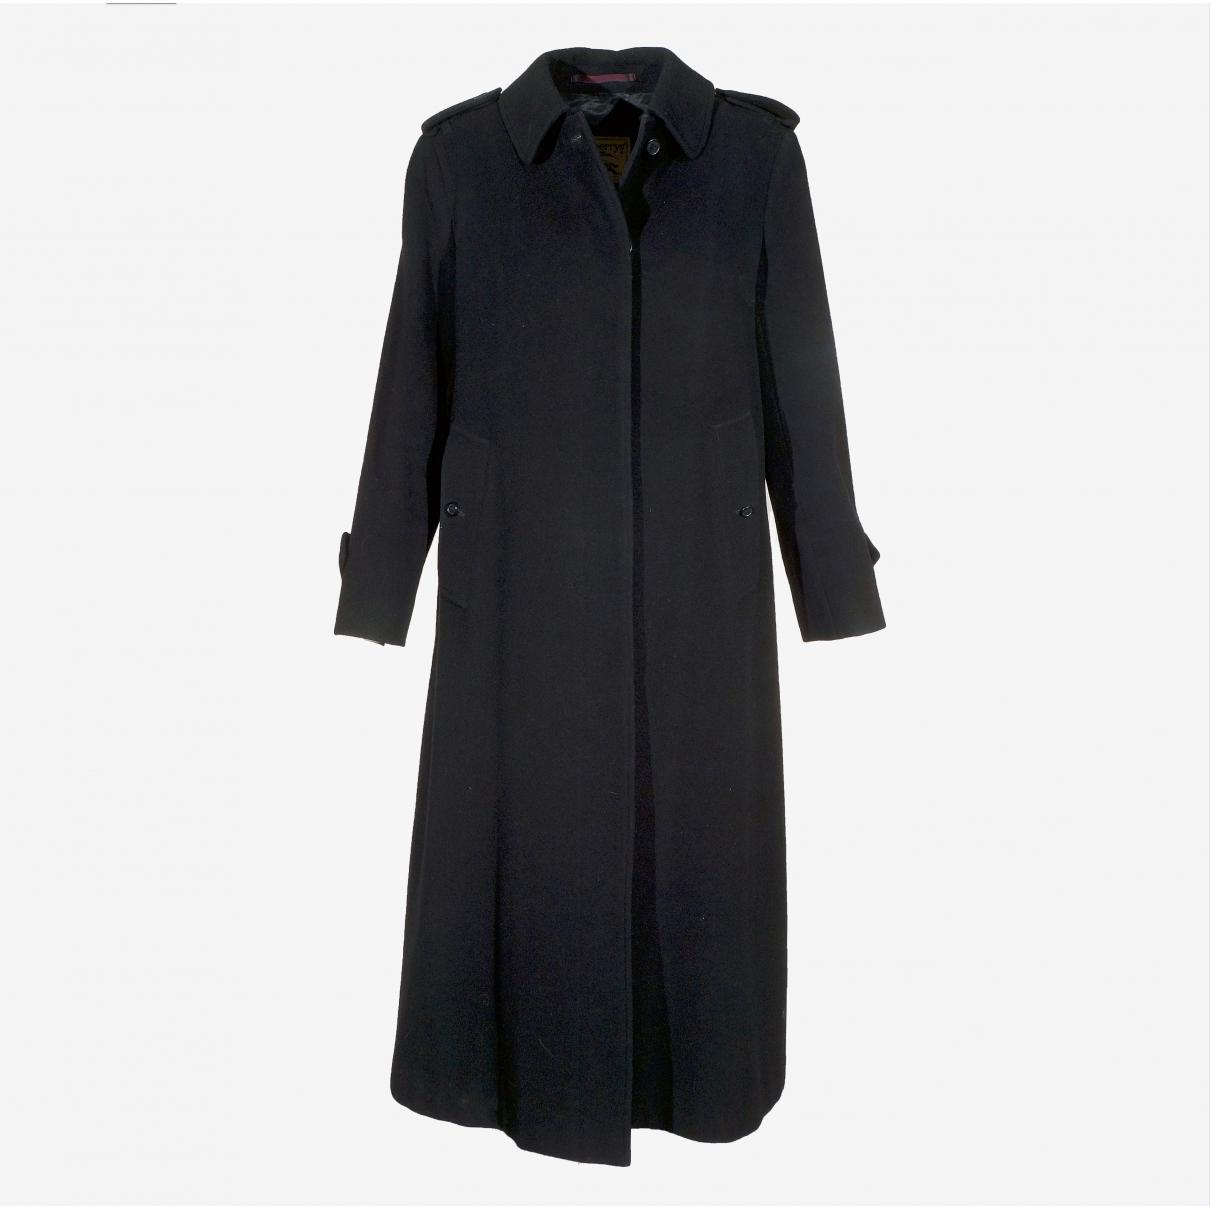 9bca71426cd1 Burberry. Women s Black Pre-owned Wool Coat. £308 From Vestiaire Collective  ...